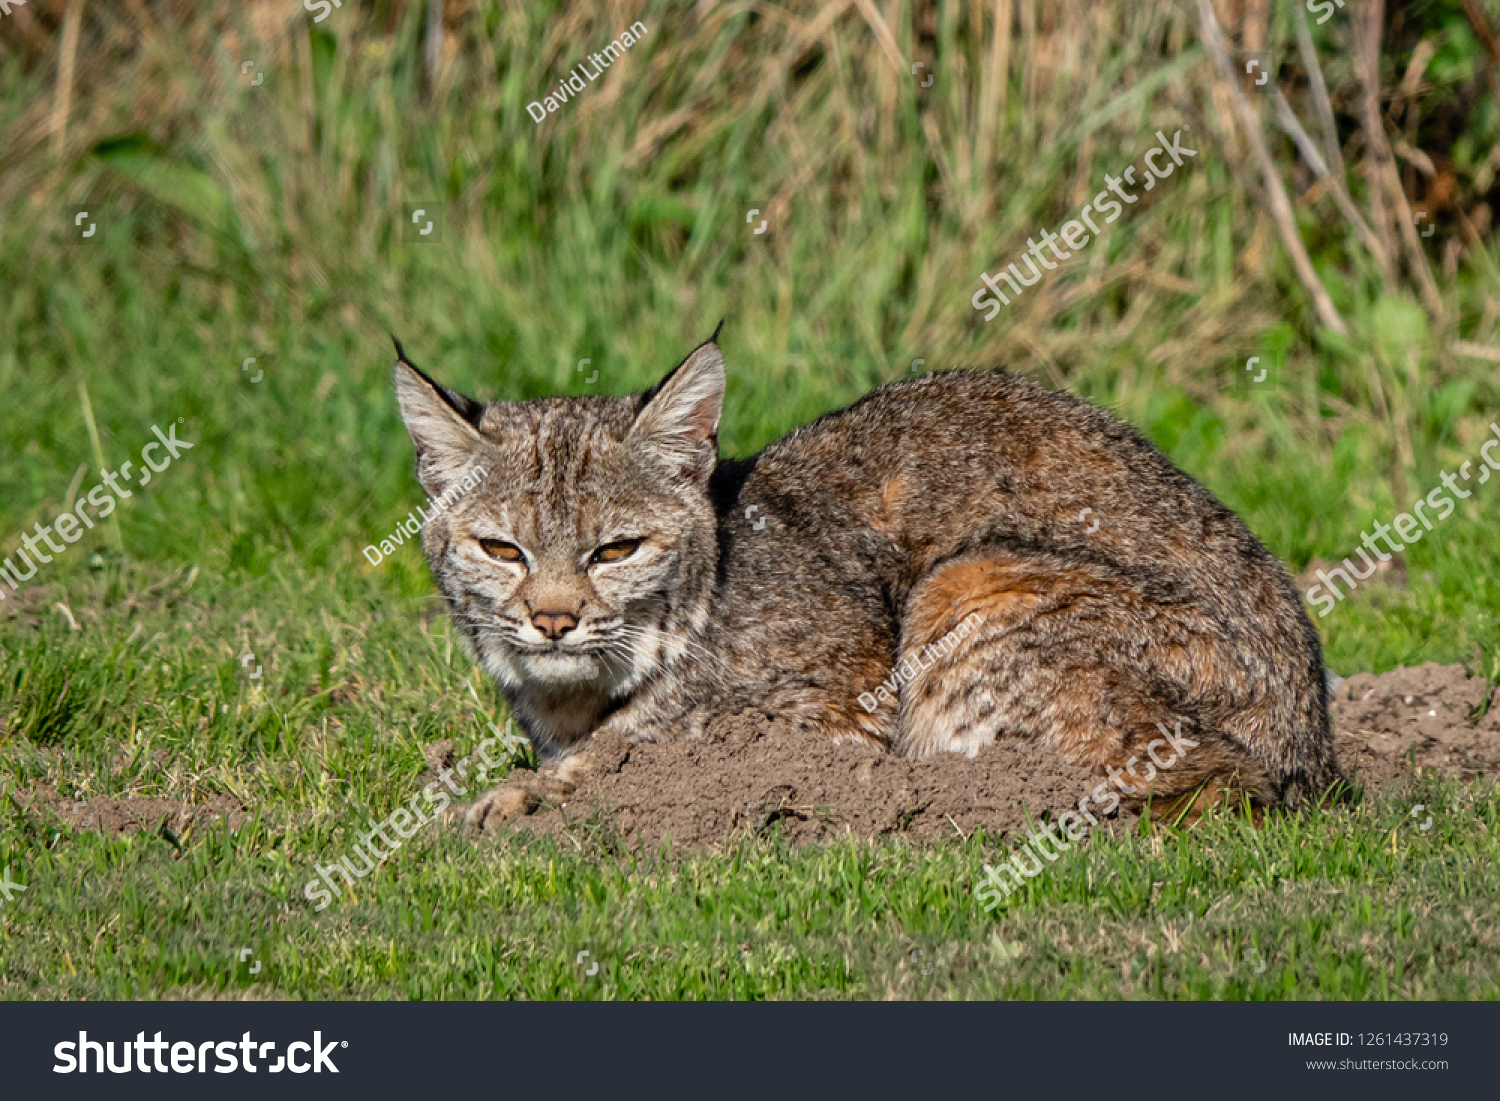 A wild Bobcat (Lynx rufus) hunts for its next meal near a gopher hole, at a local park in the hills of Monterey, California.